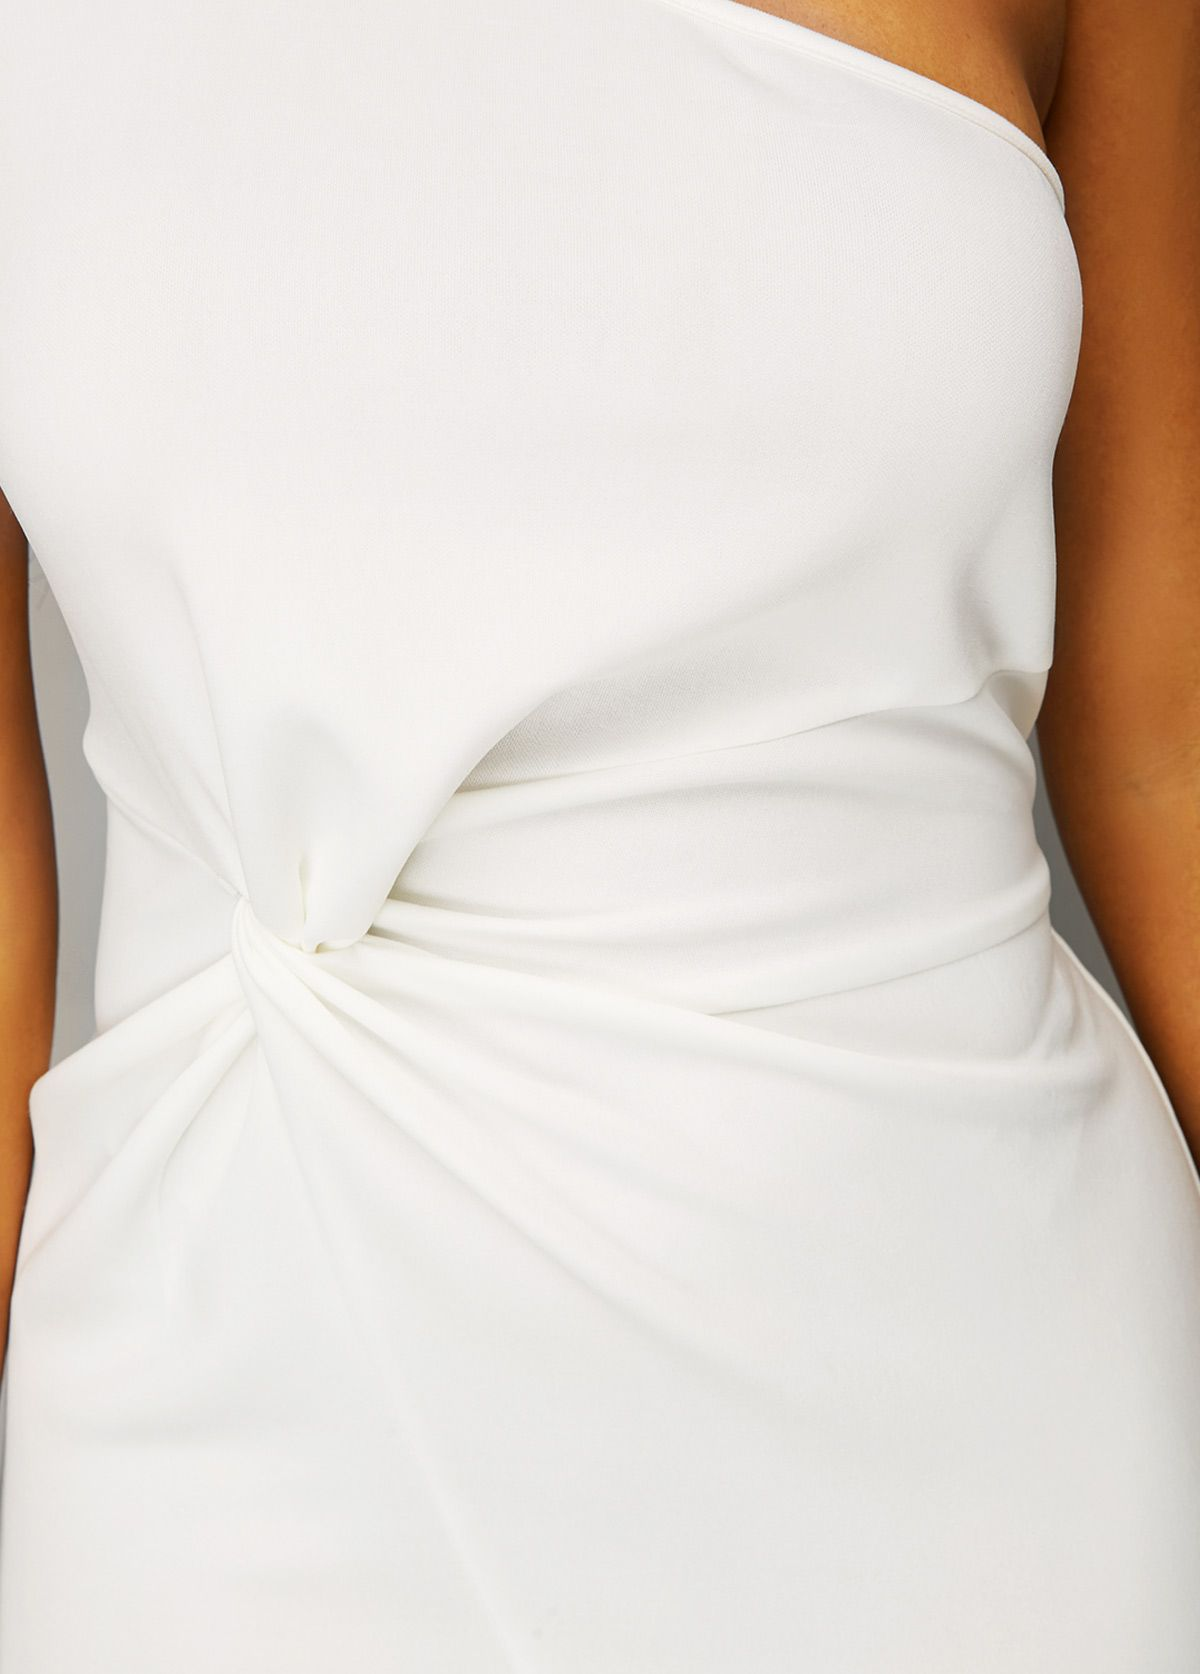 a13bdbb163 One Shoulder Twist Detail Ruffle Hem White Dress | Rosewe.com - USD $35.01